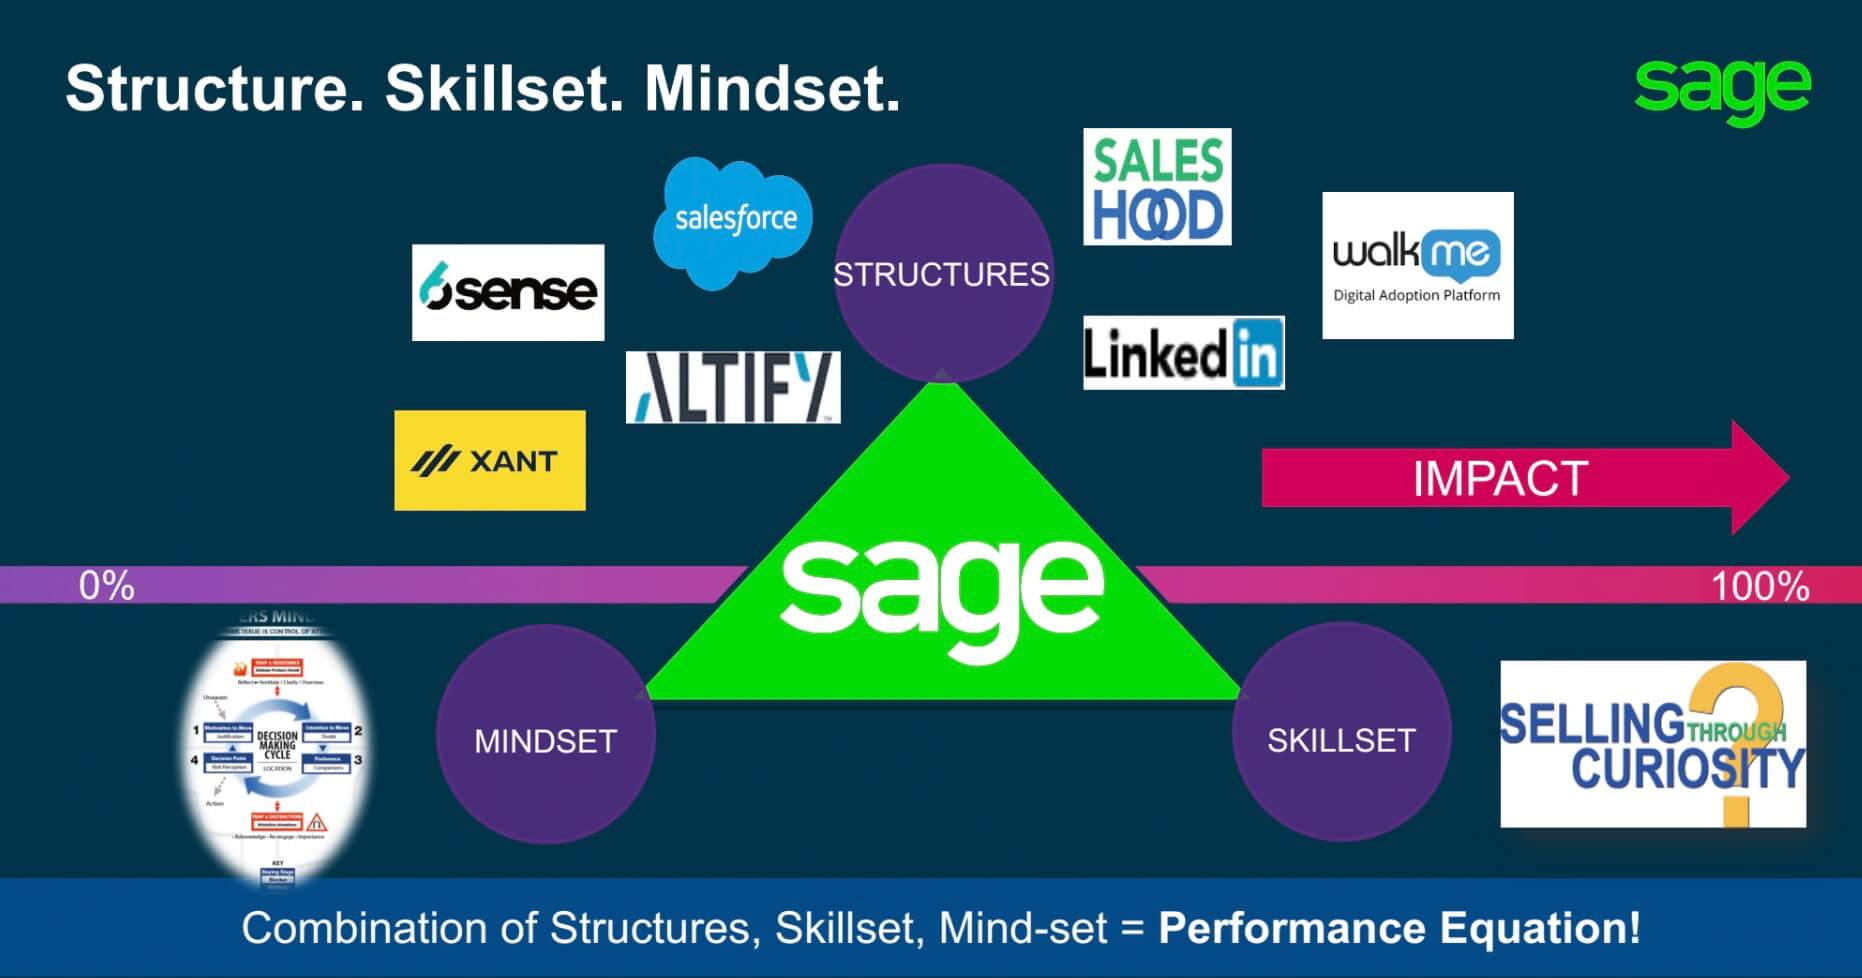 Combination of structures, skillset, and mindset = performance equation.